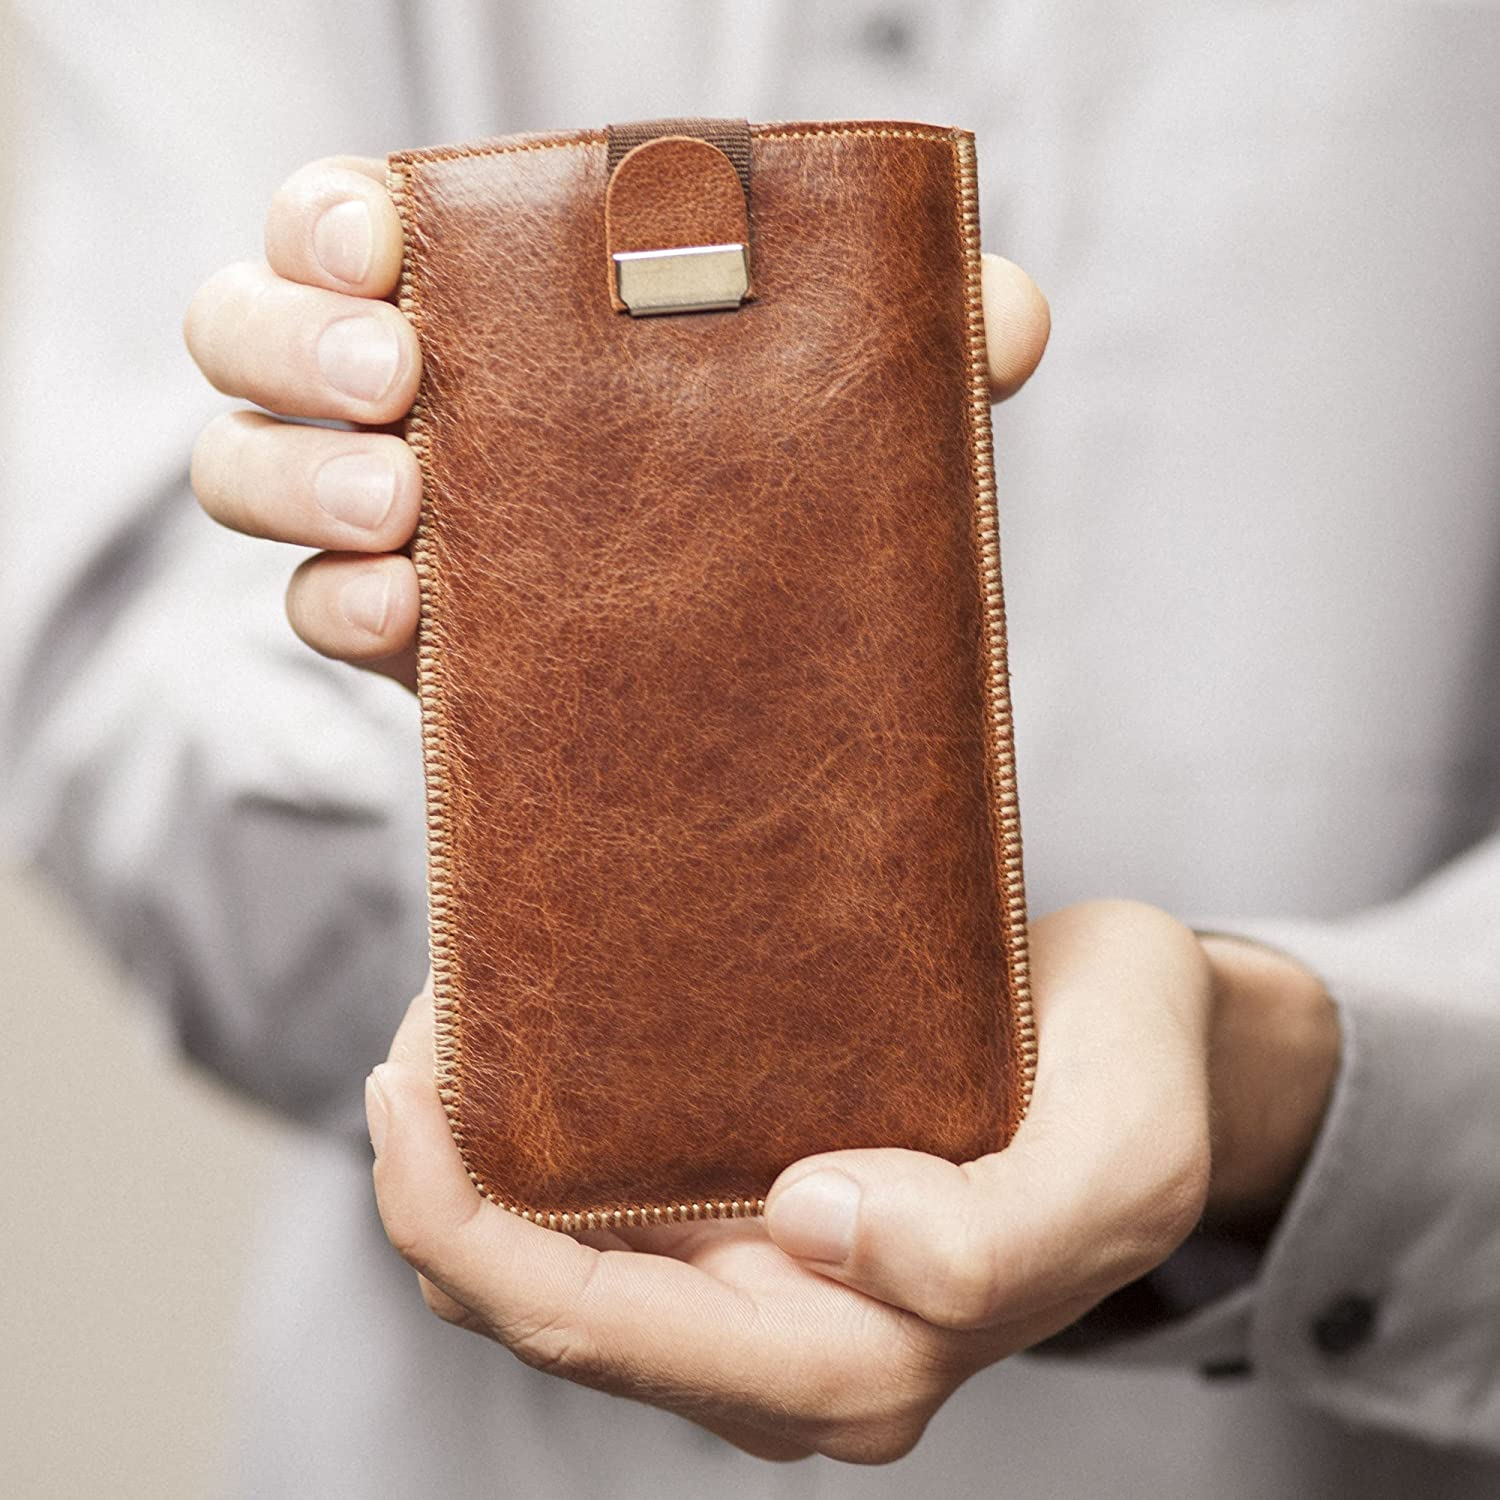 iPhone XS MAX Leather Cover with pull Band Case, Sleeve Pouch Shell also fits 8+, 7+, 6+, 6s+ models